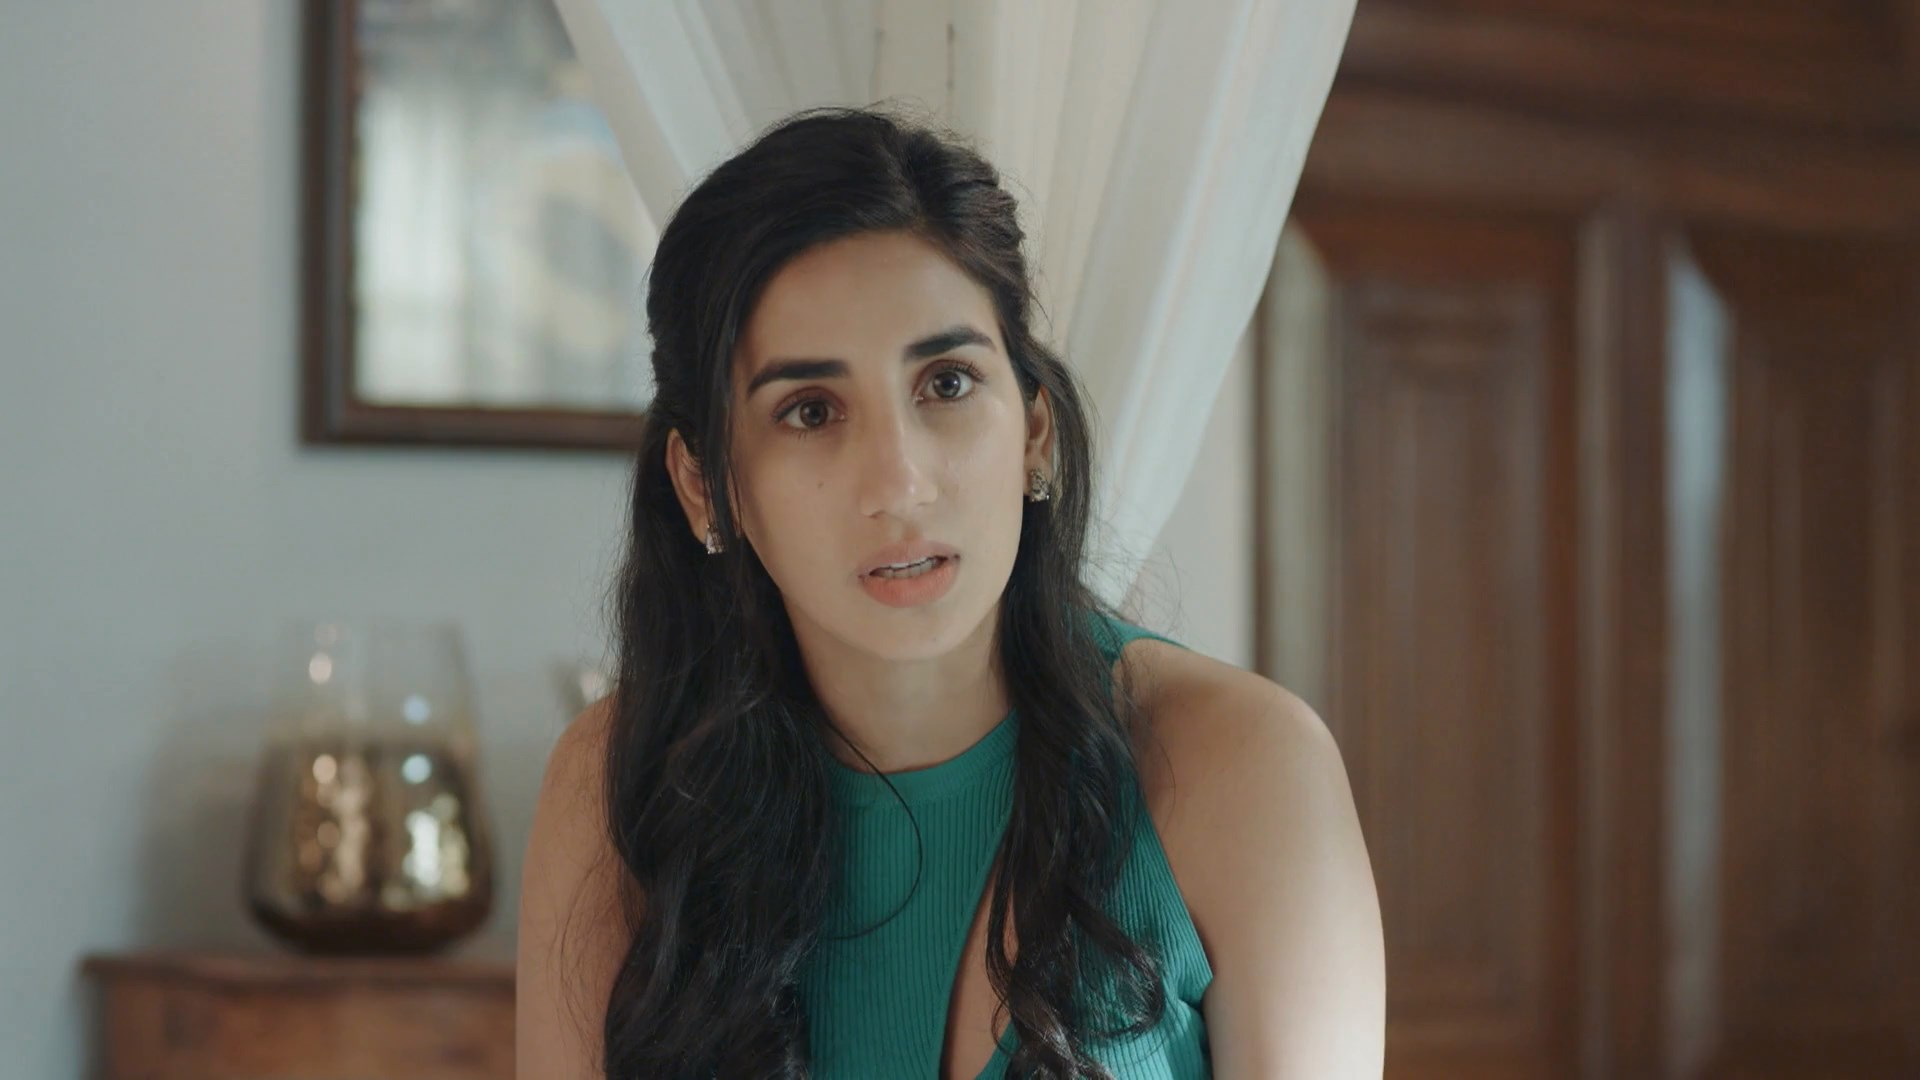 Illegal25837bf - Illegal 2020 Hindi S01 Voot Select Complete Web Series 480p HDRip 900MB x264 AAC